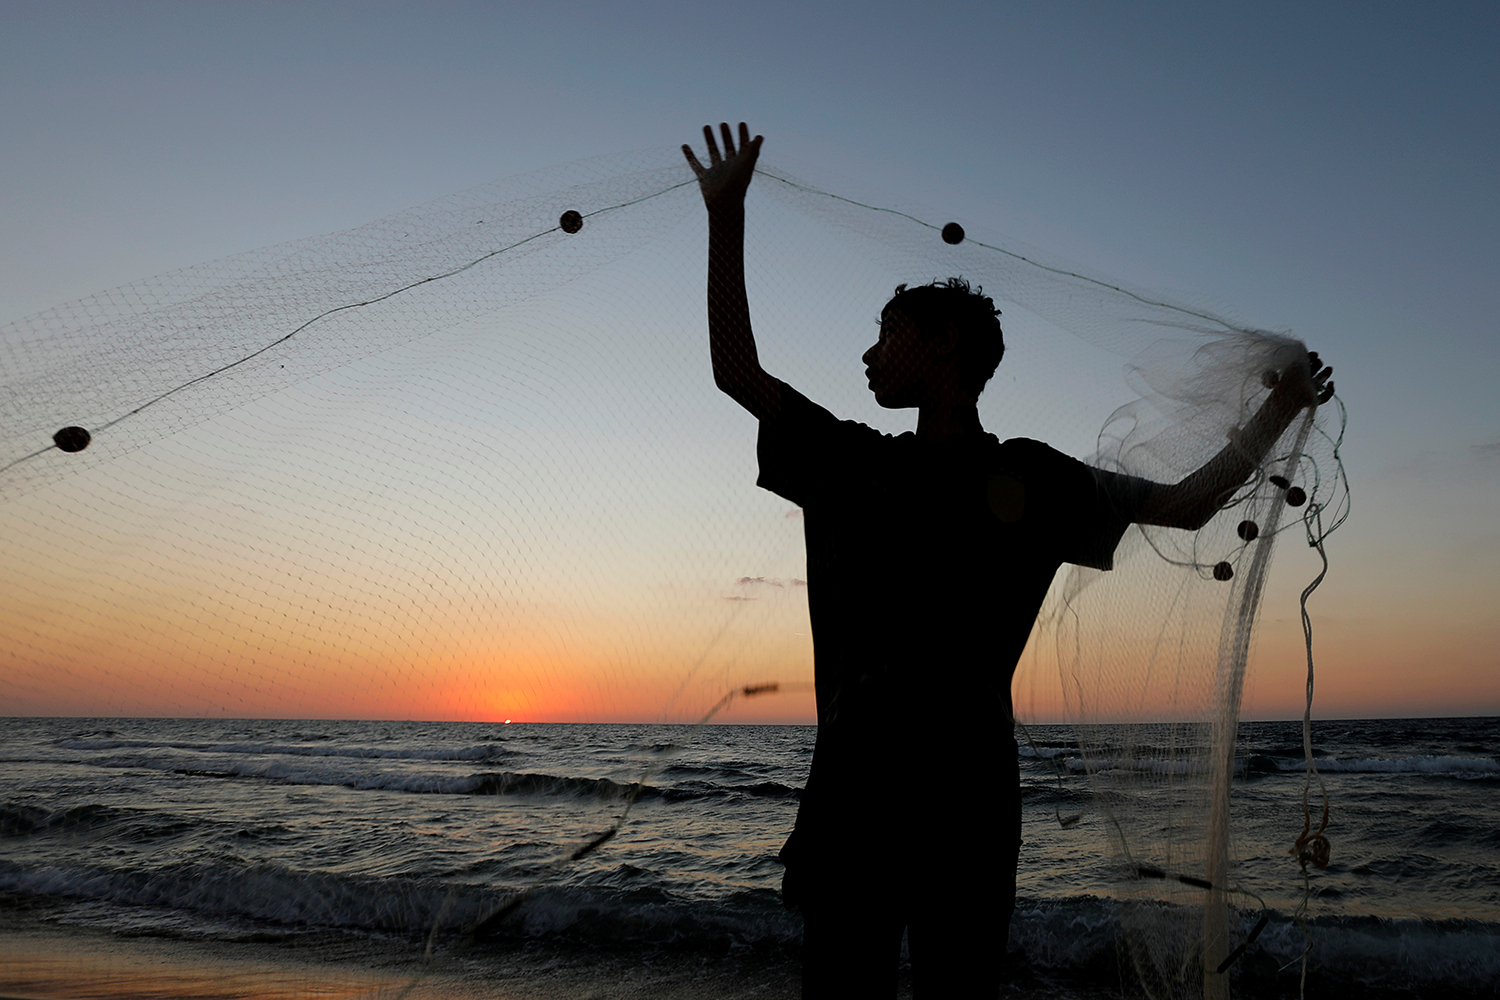 A Palestinian fisherman repairs his net at a beach in the northern Gaza Strip on Oct. 5. Suhaib Salem/REUTERS